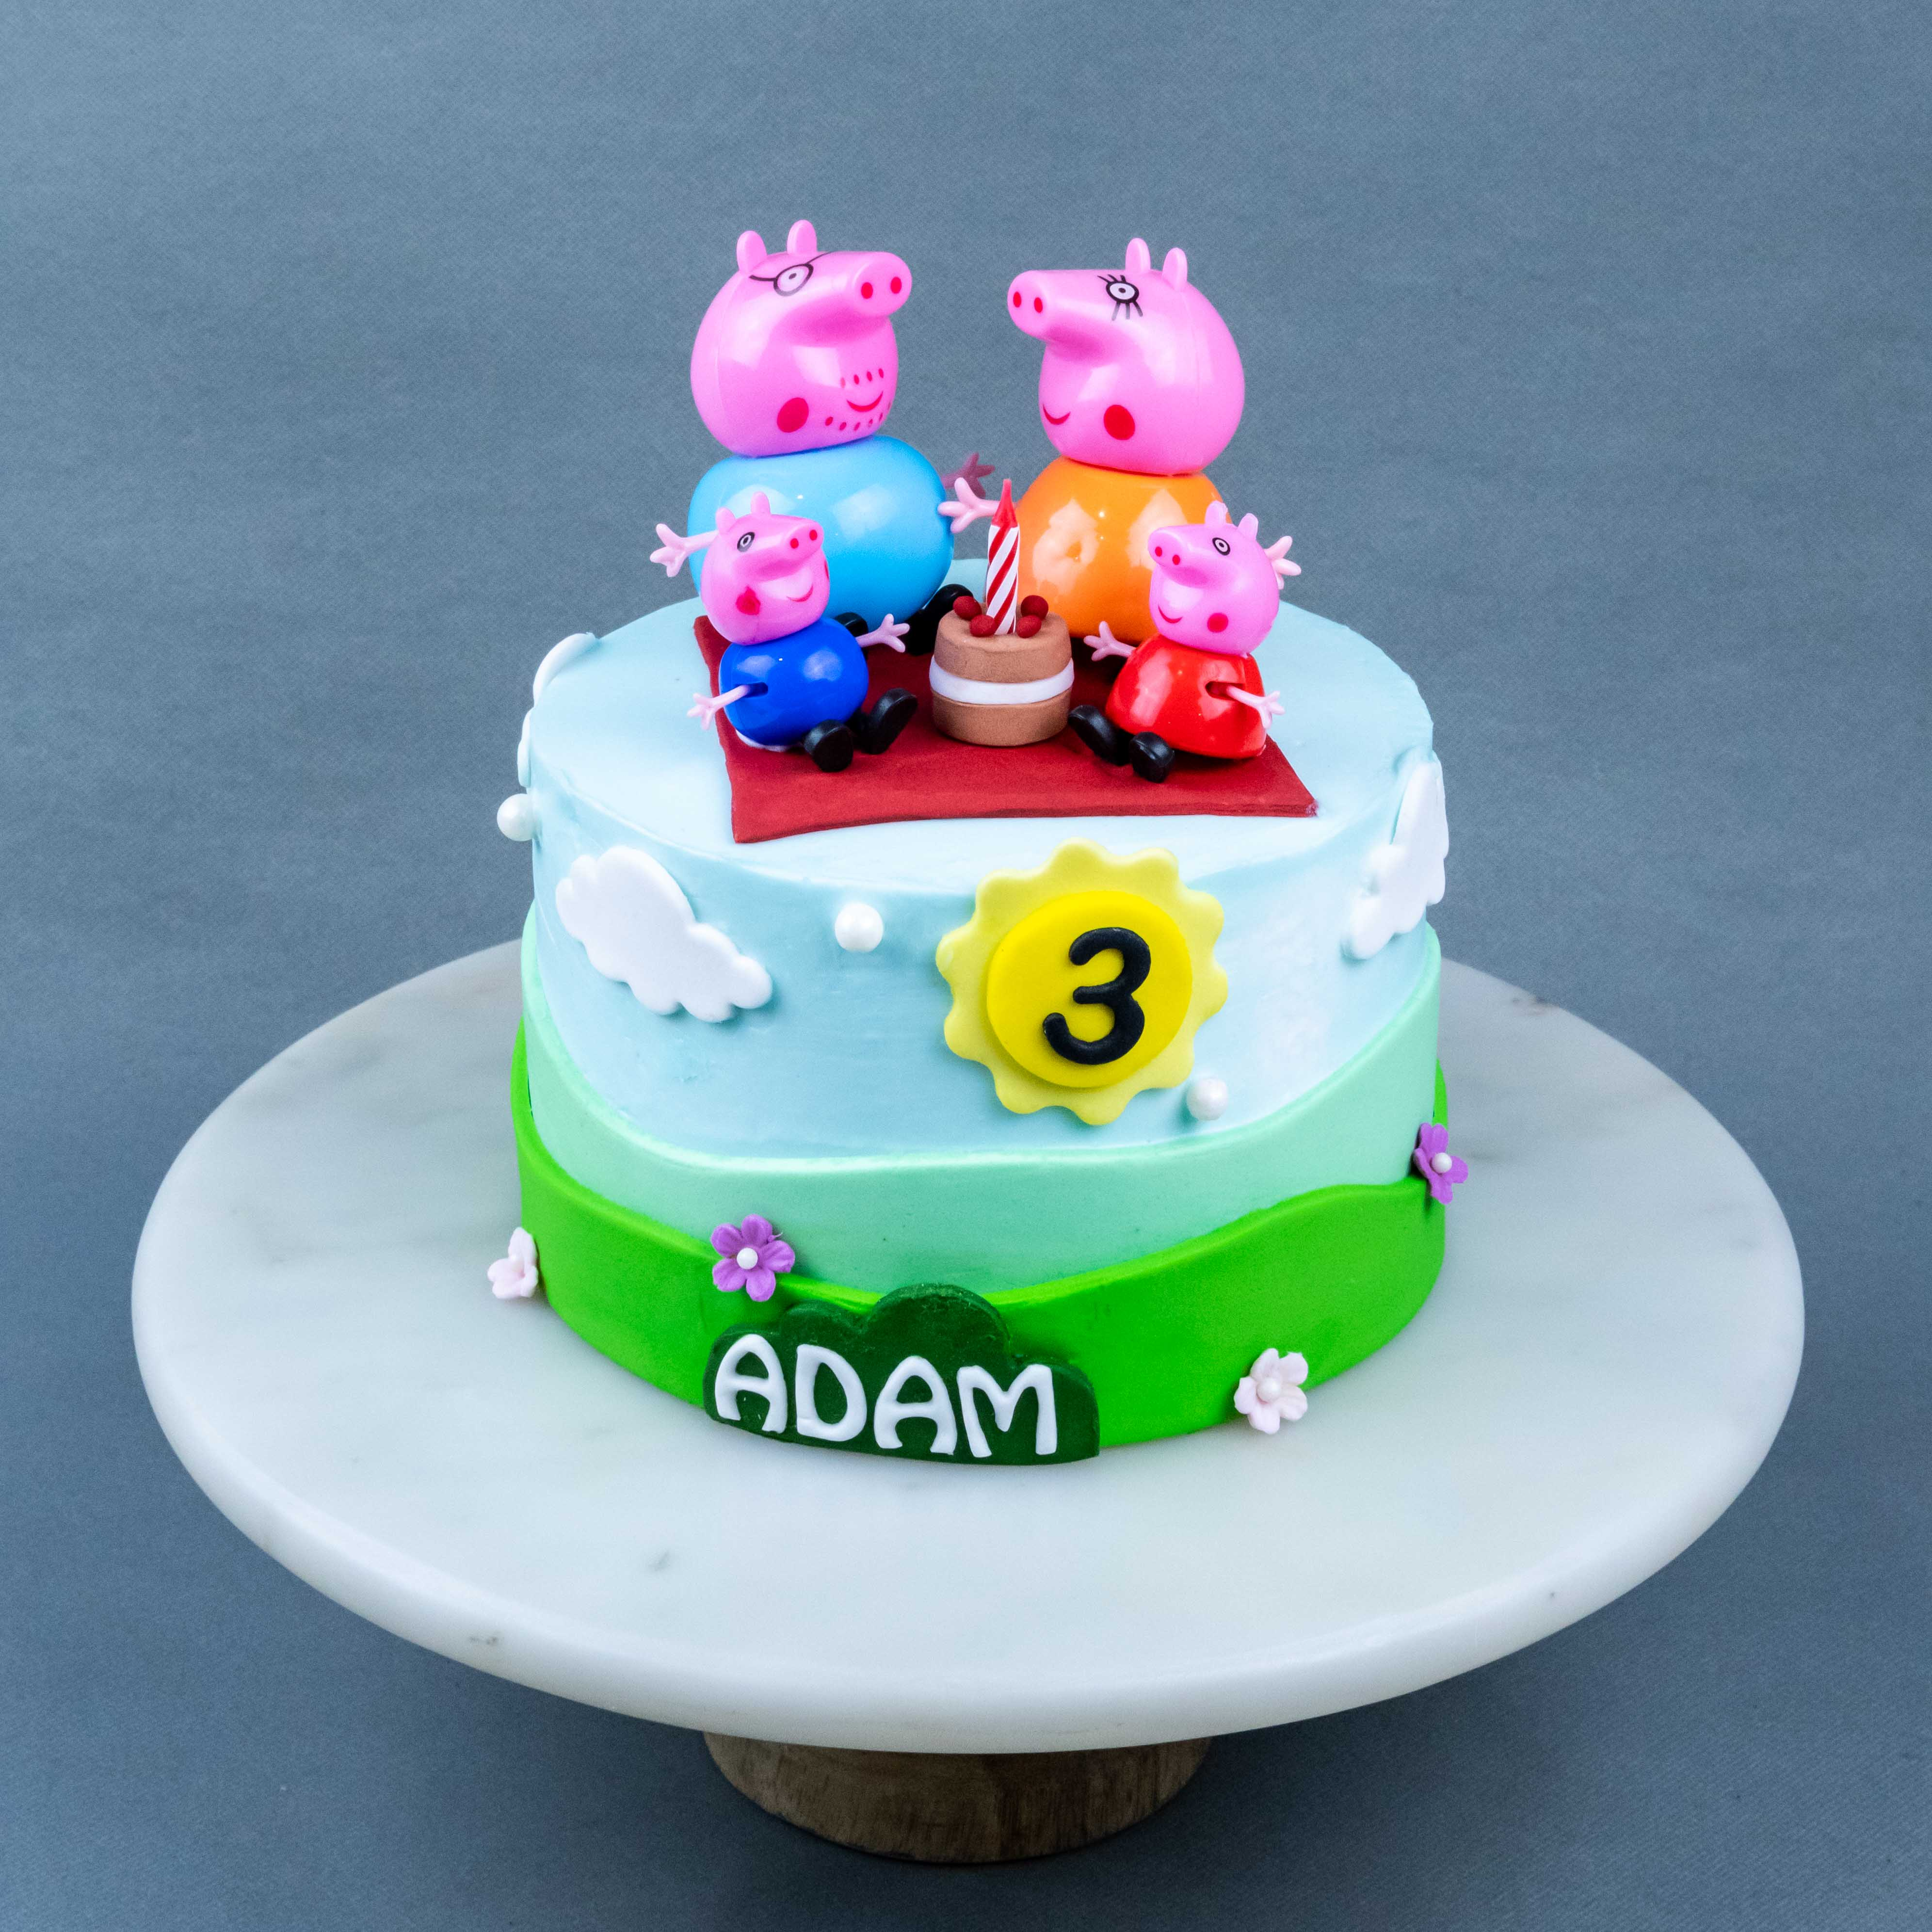 Peppa Pig Family Picnic Cake Eat Cake Today Online Birthday Cake Delivery Kl